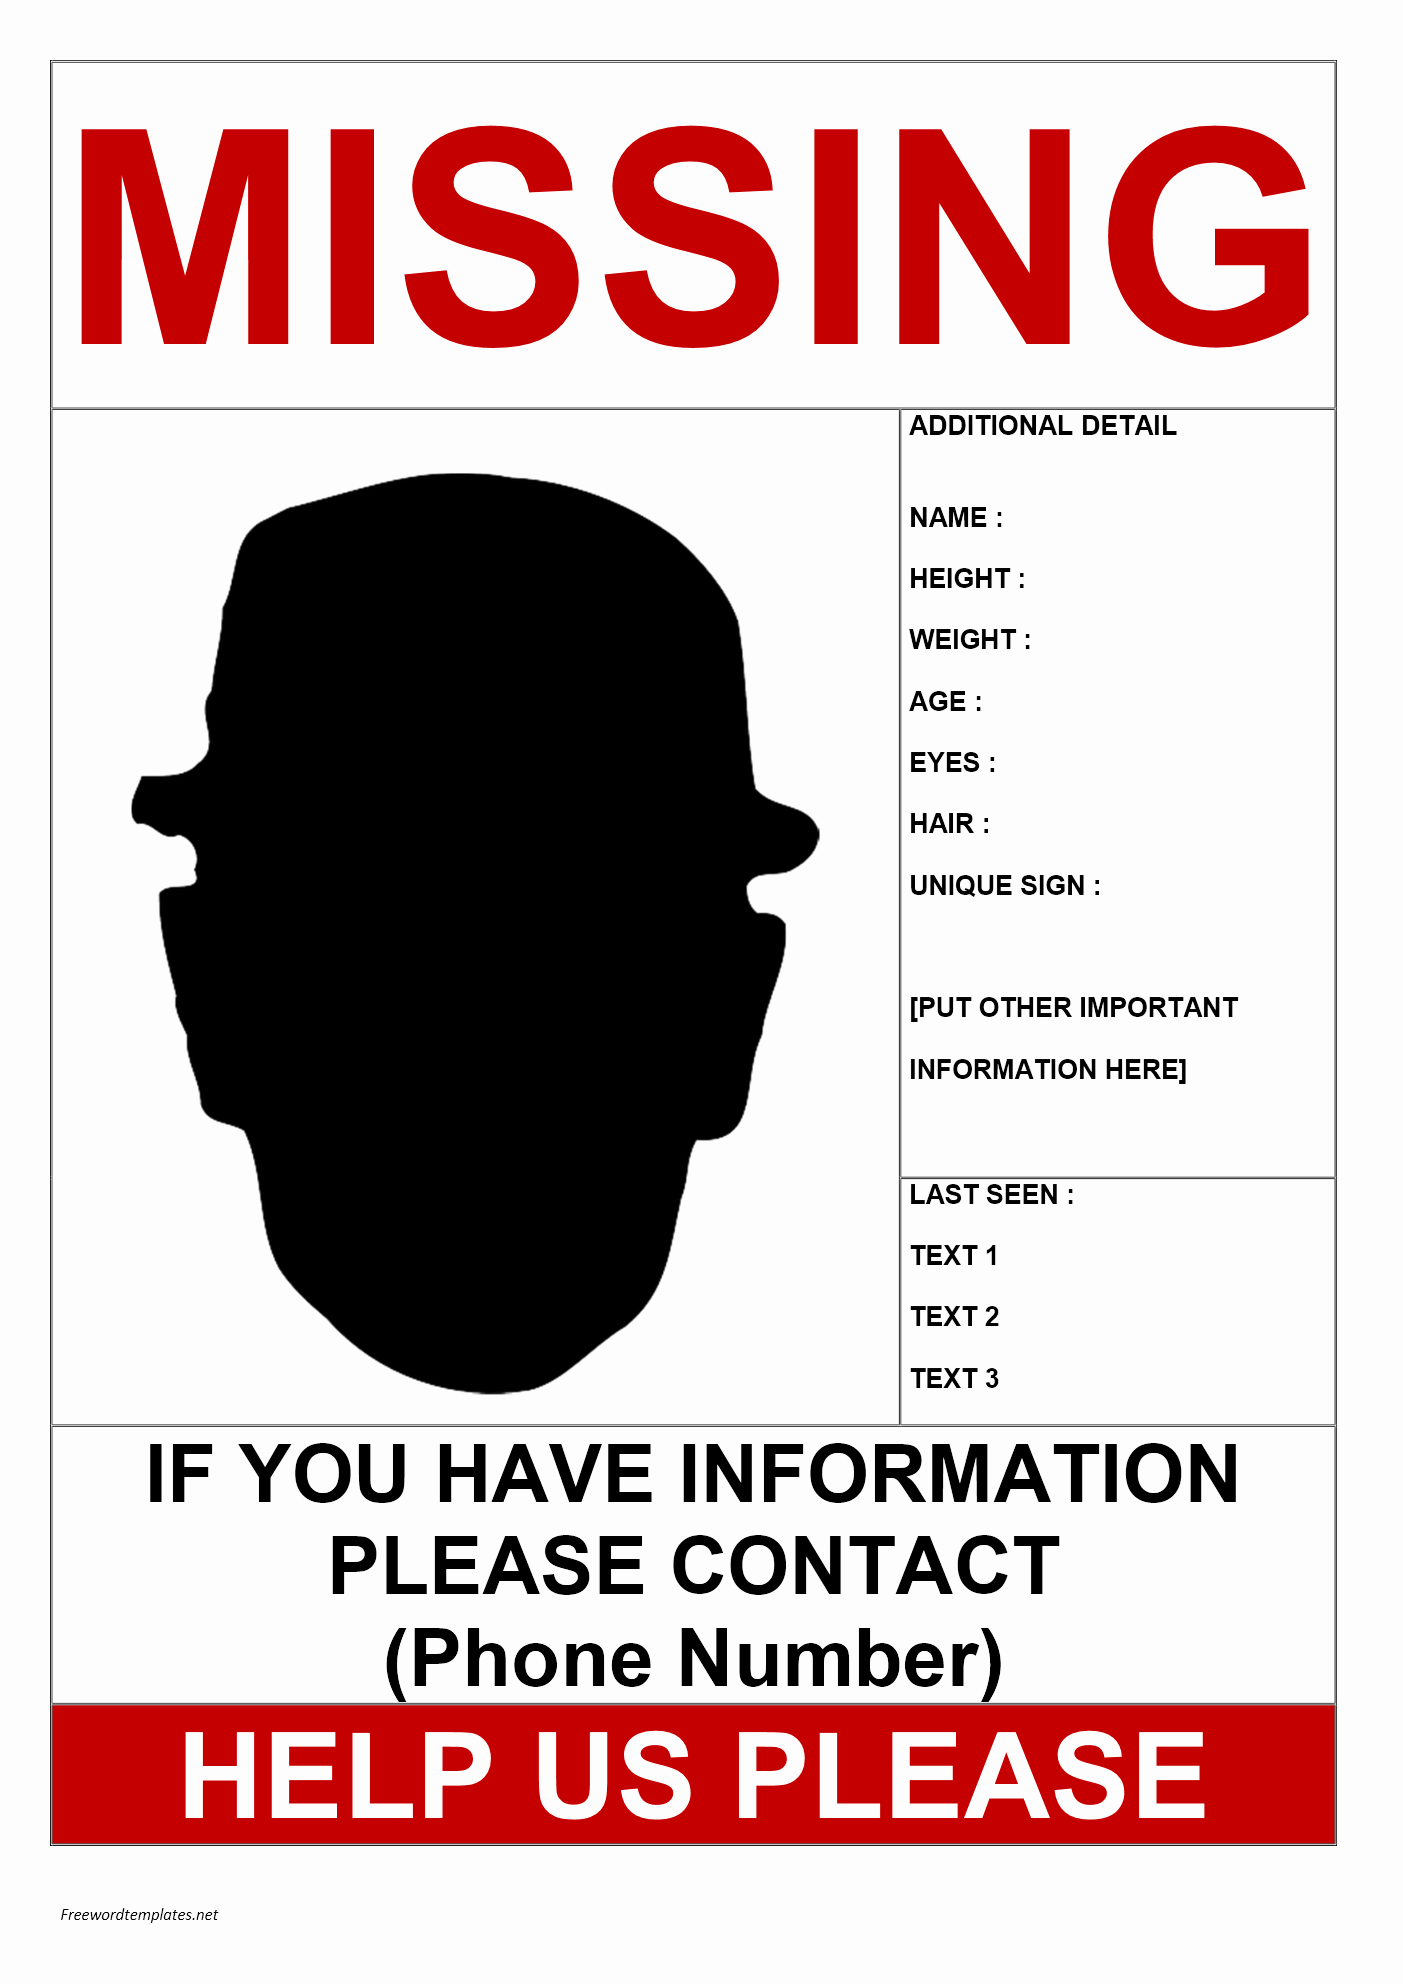 Missing Person Flyer Template New Missing Person Poster Template